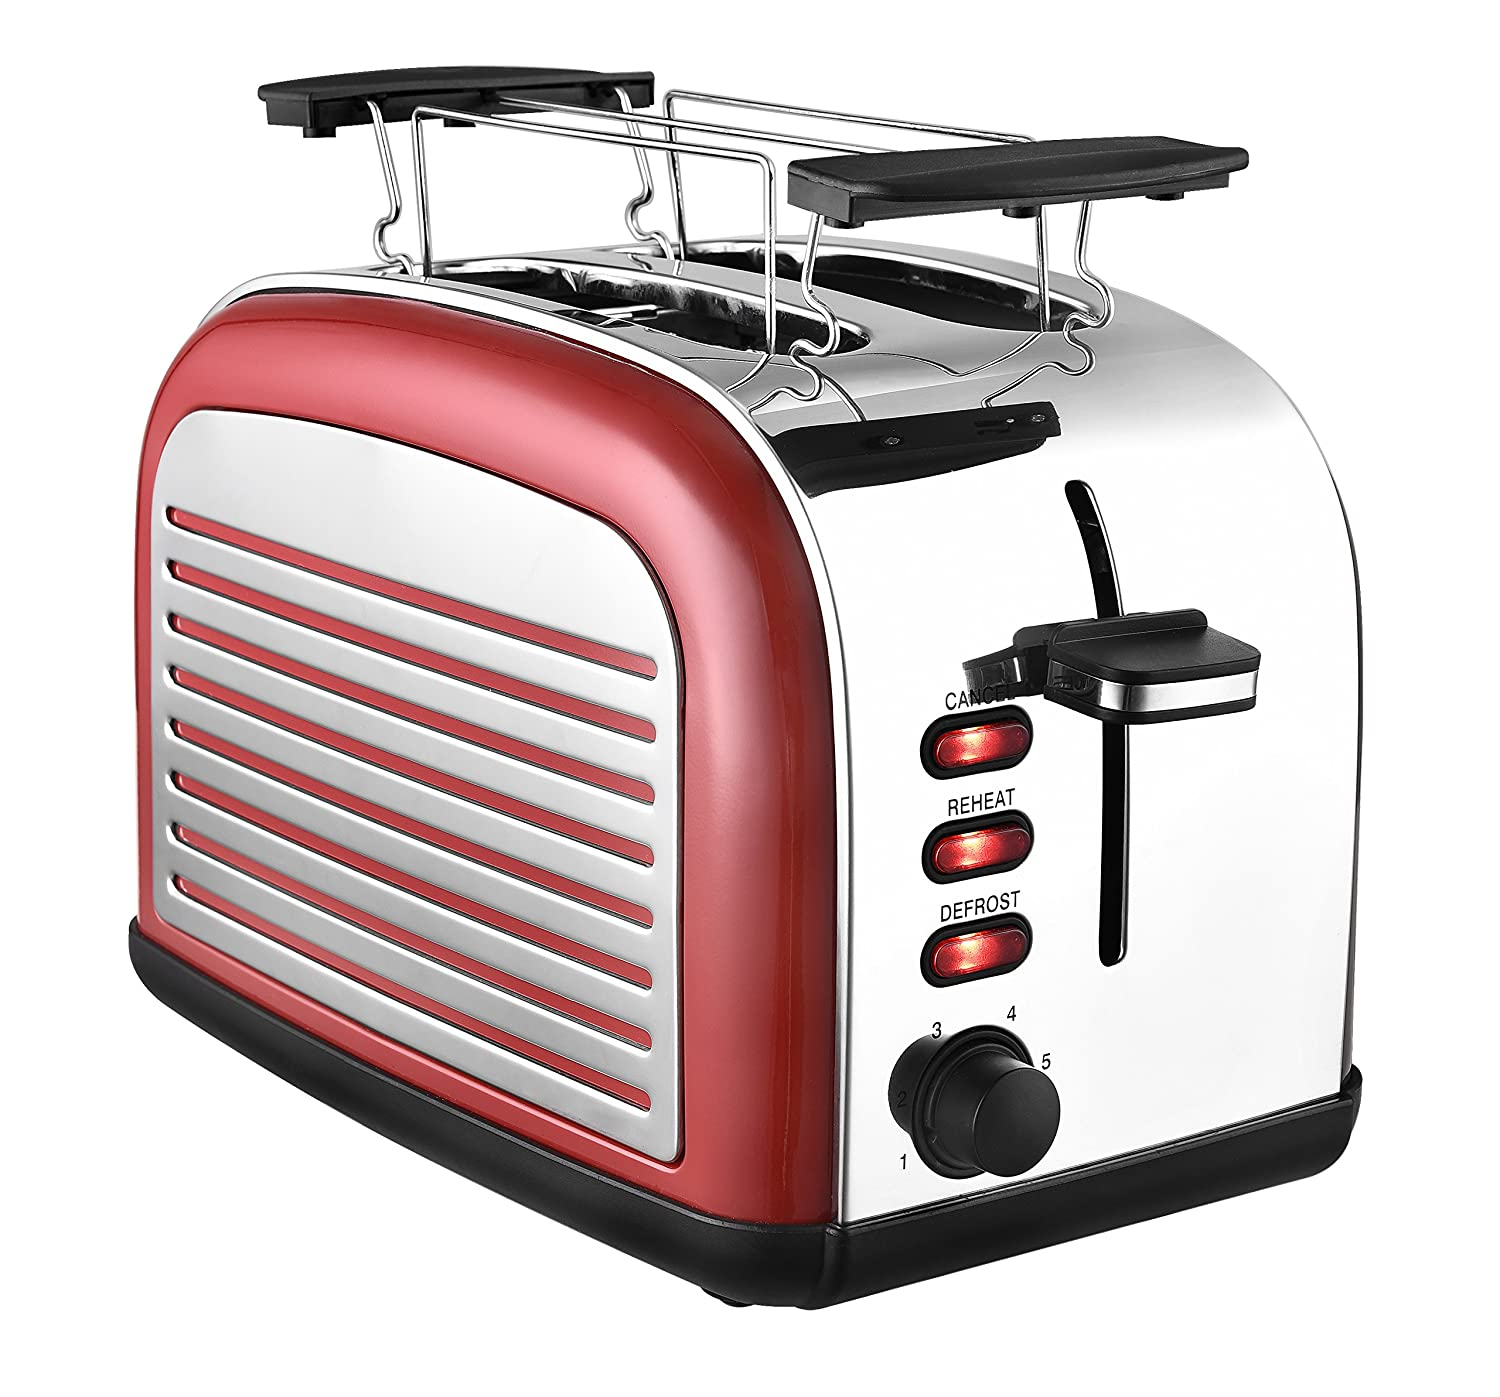 bagel over toaster graphics kalorik ideas slice lovely toasters multi black function new decker